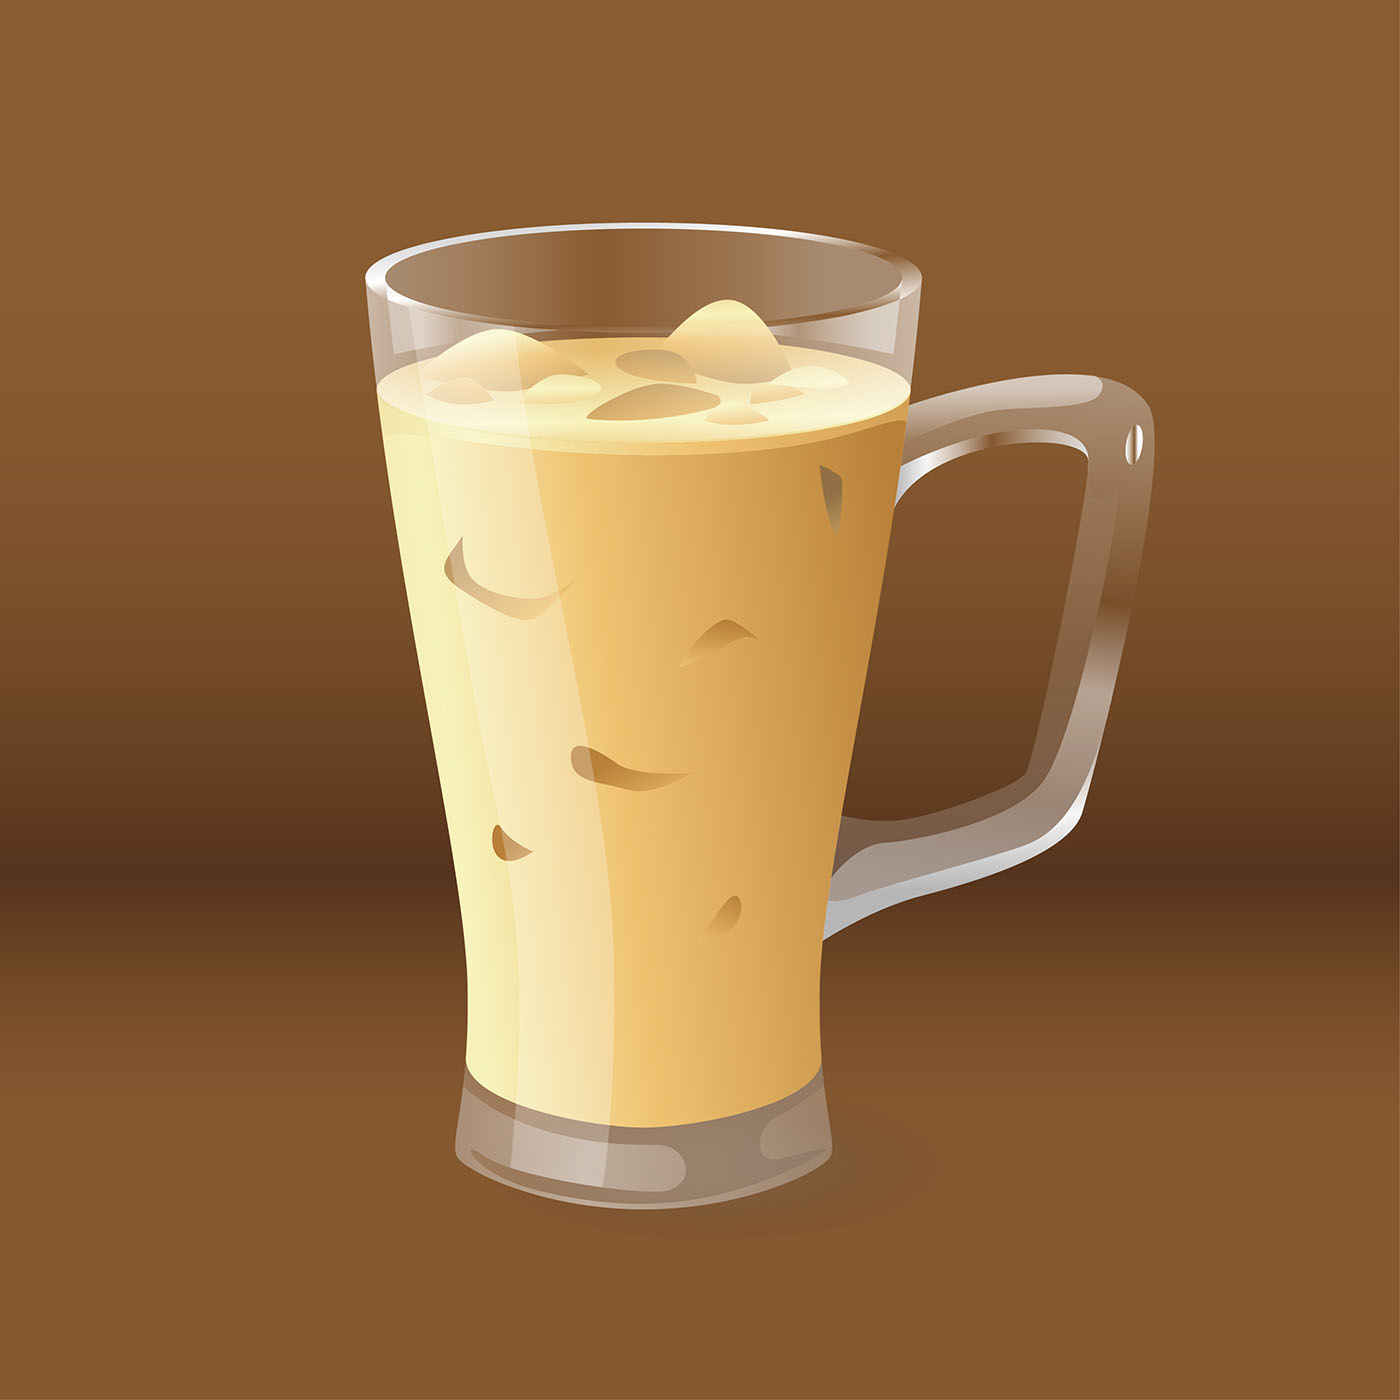 Realistic Iced Coffee Vector Download Free Vector Art